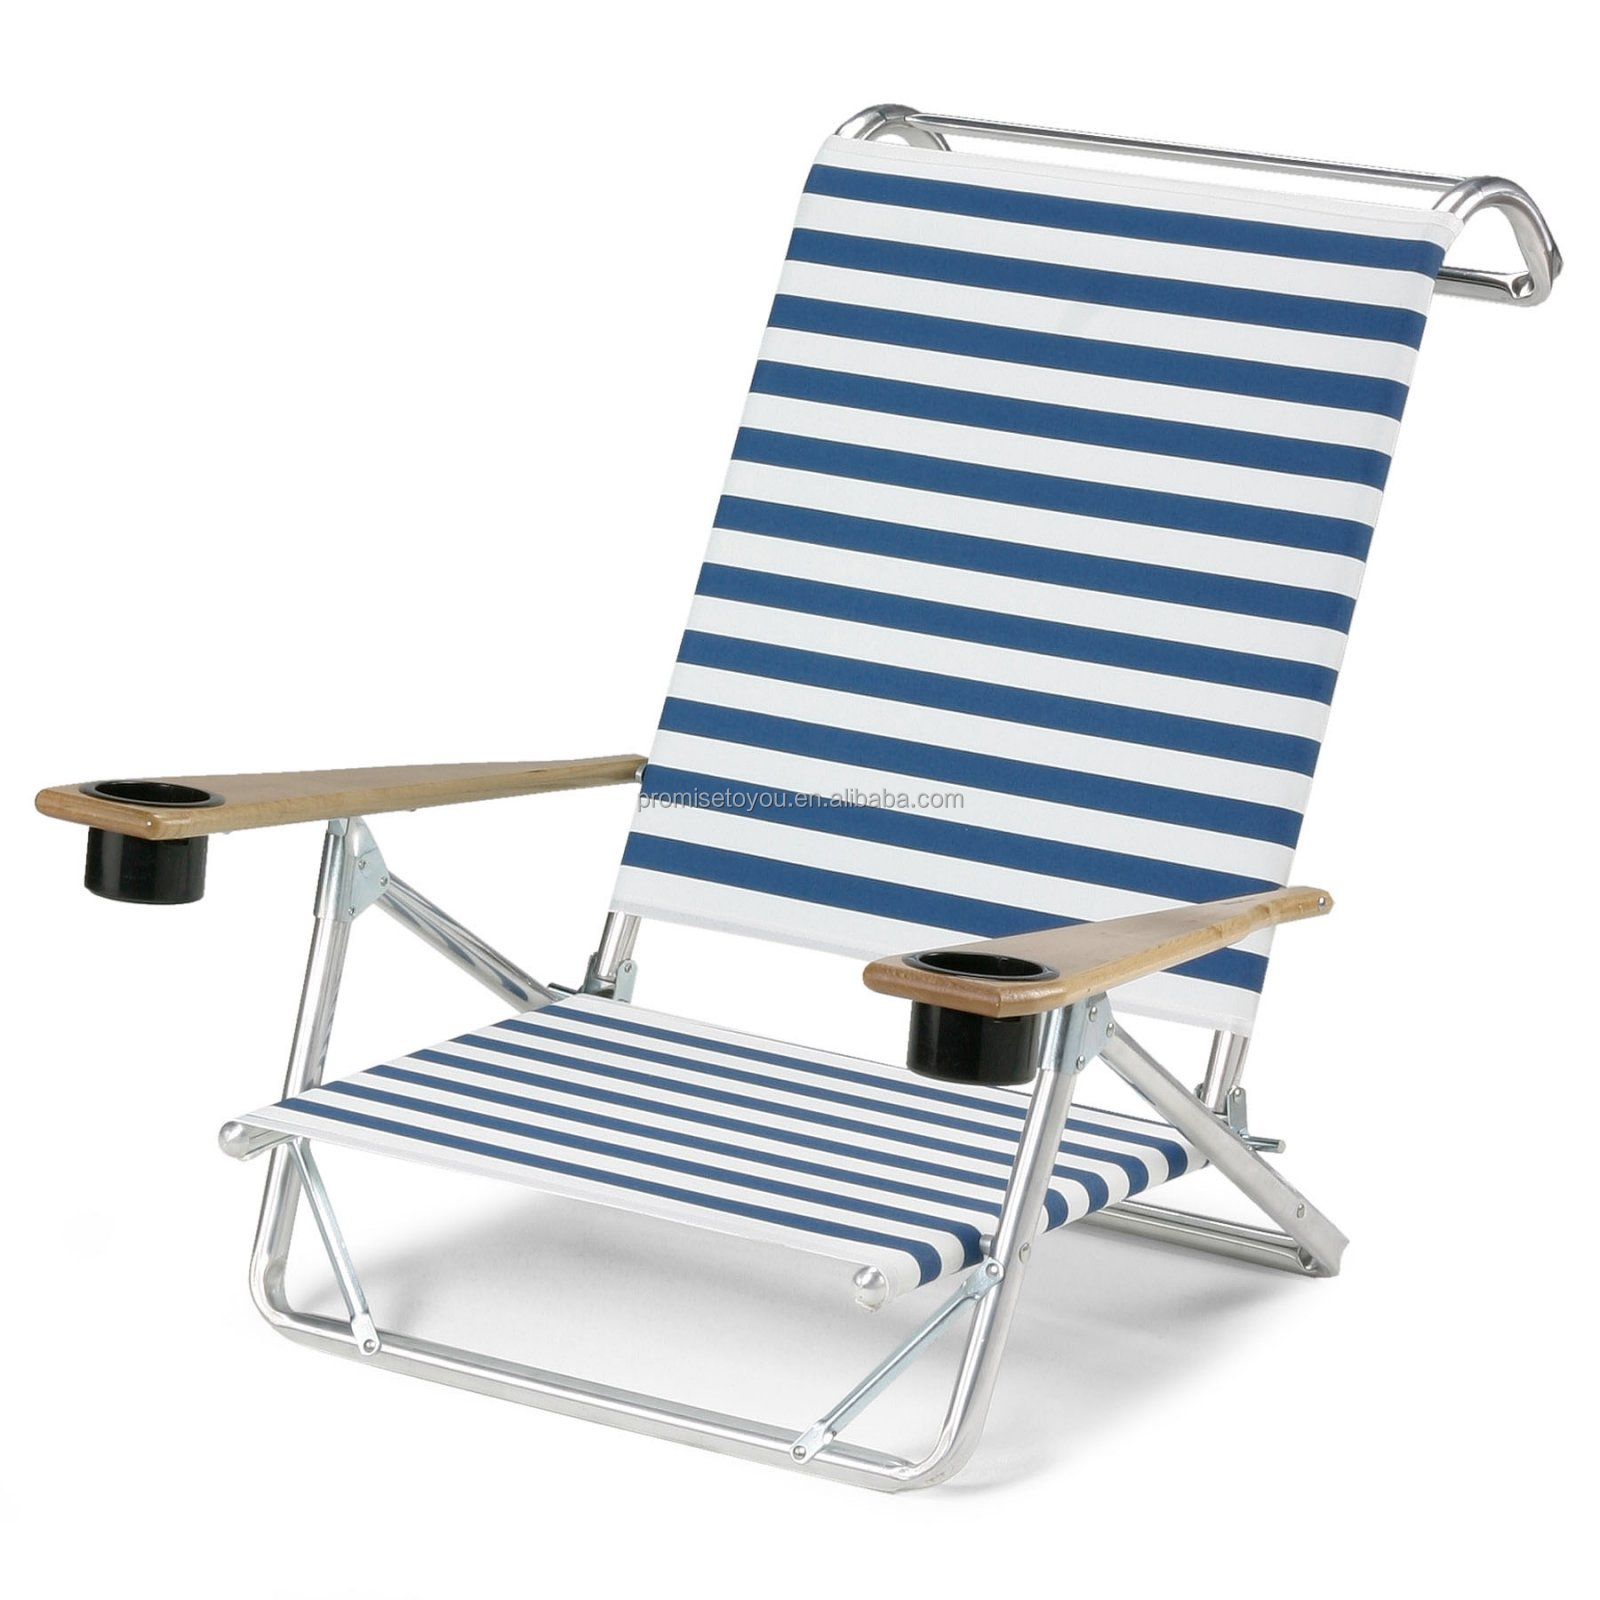 beach chair 5 position chair with cup holder insulated cooler carry case buy fishing chair. Black Bedroom Furniture Sets. Home Design Ideas